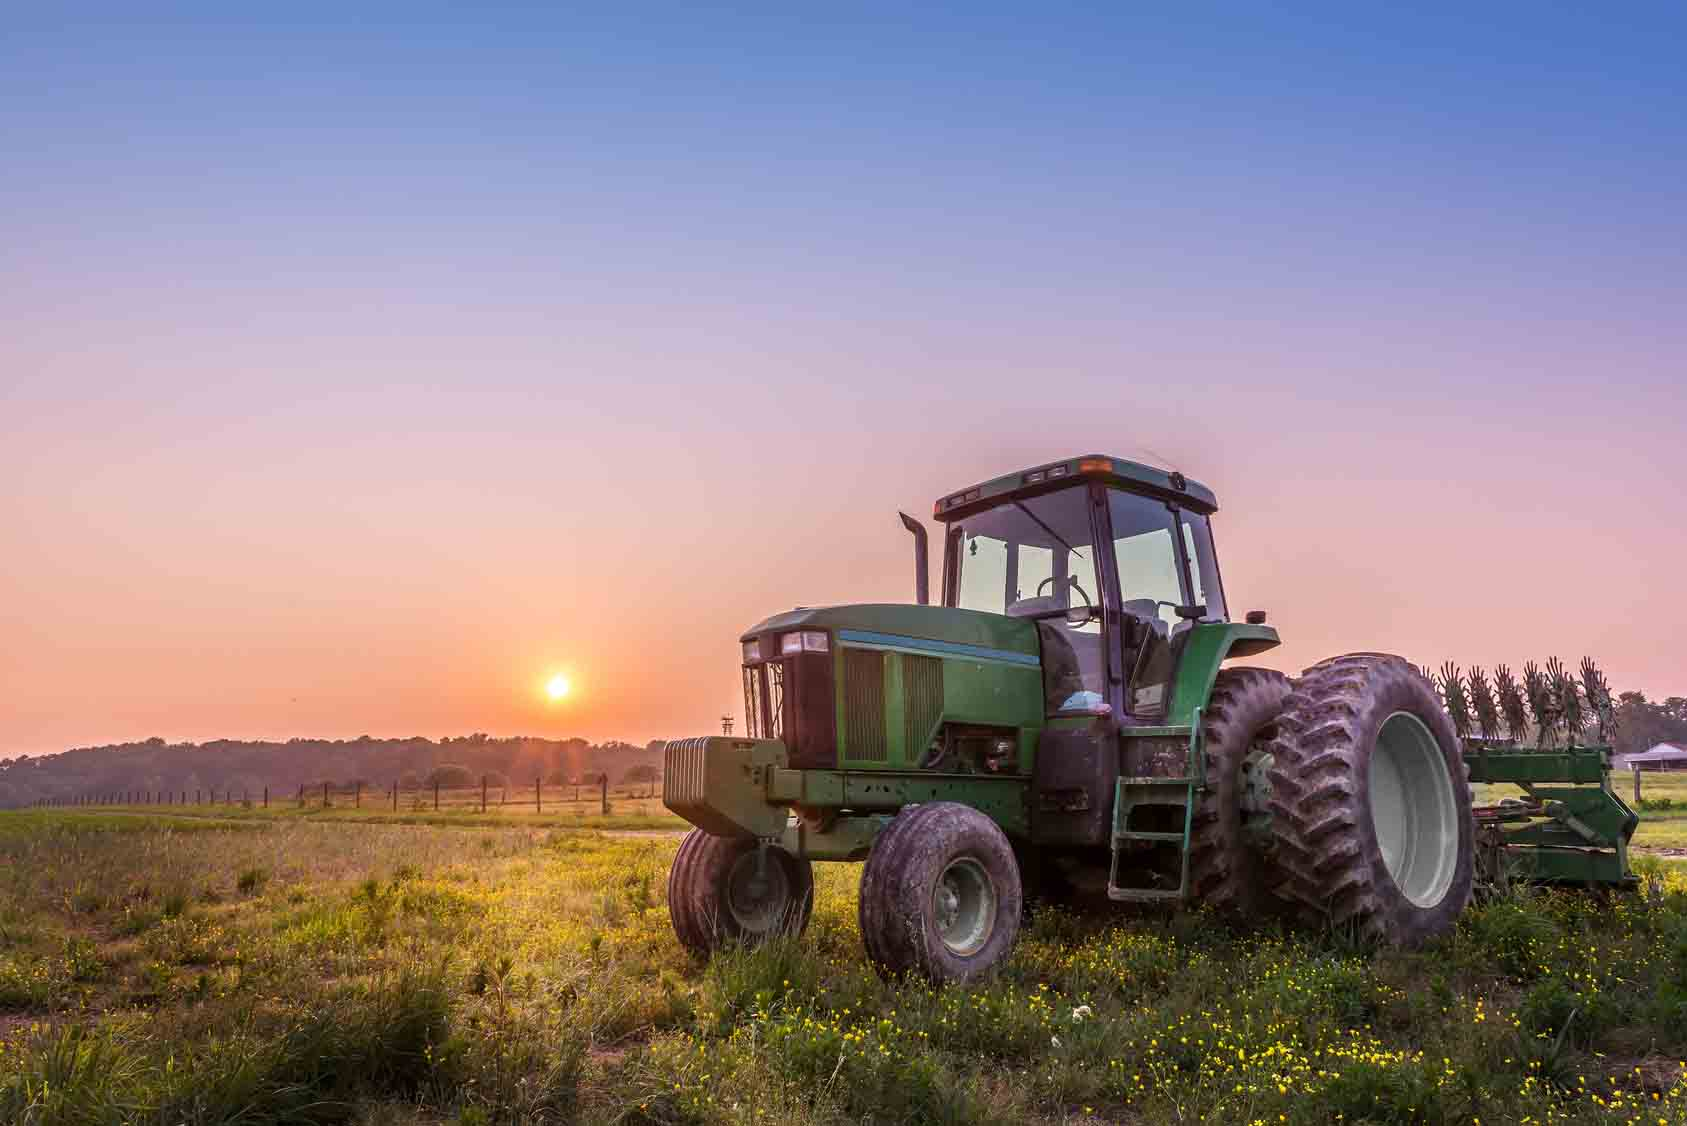 Farm Tractor in a field on a Maryland Farm at sunset